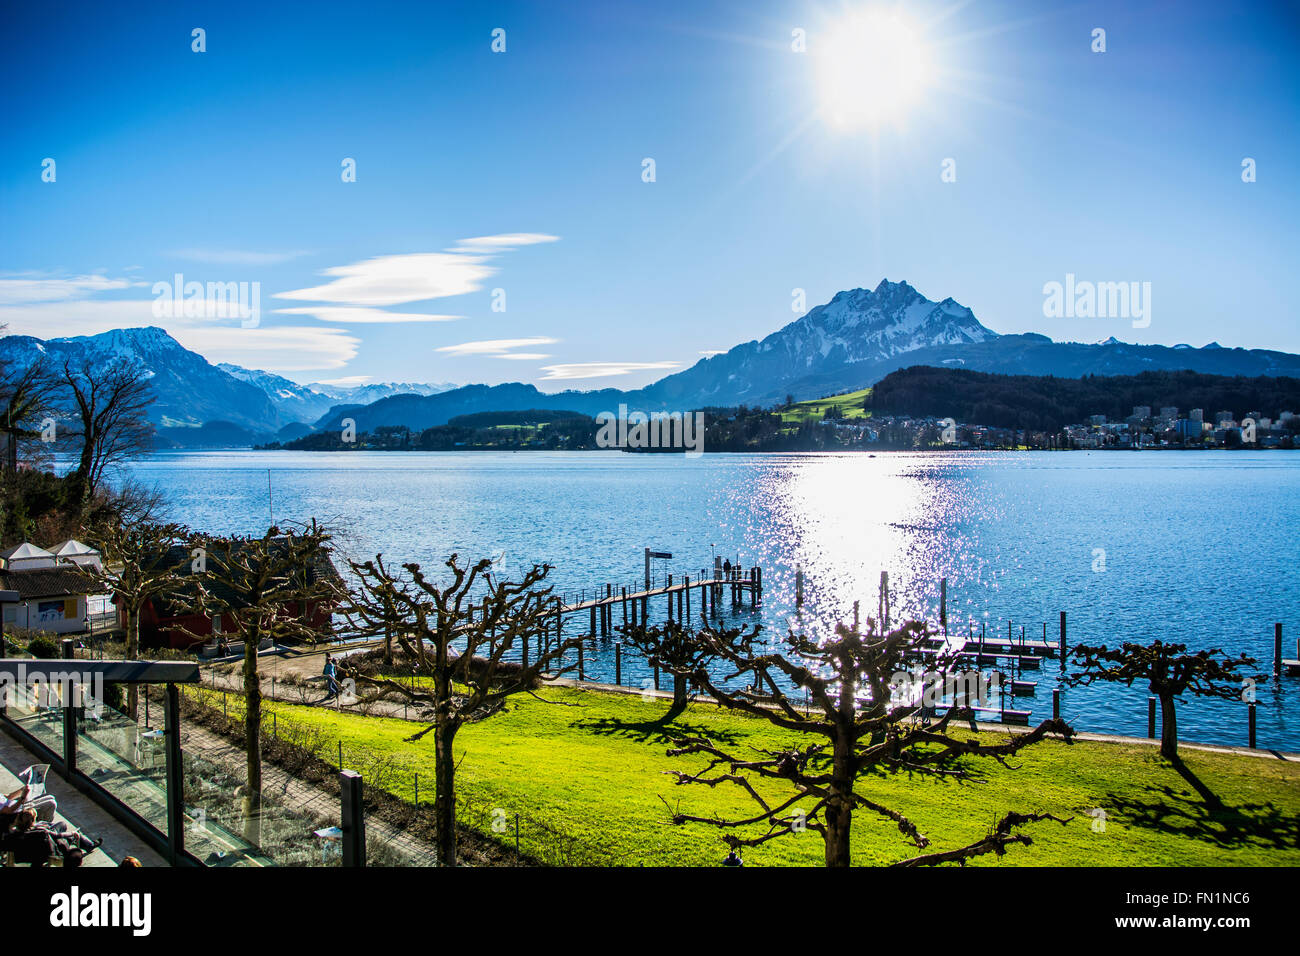 Fascinating view of Lucerne Lake in Switzerland in a sunny day - Stock Image